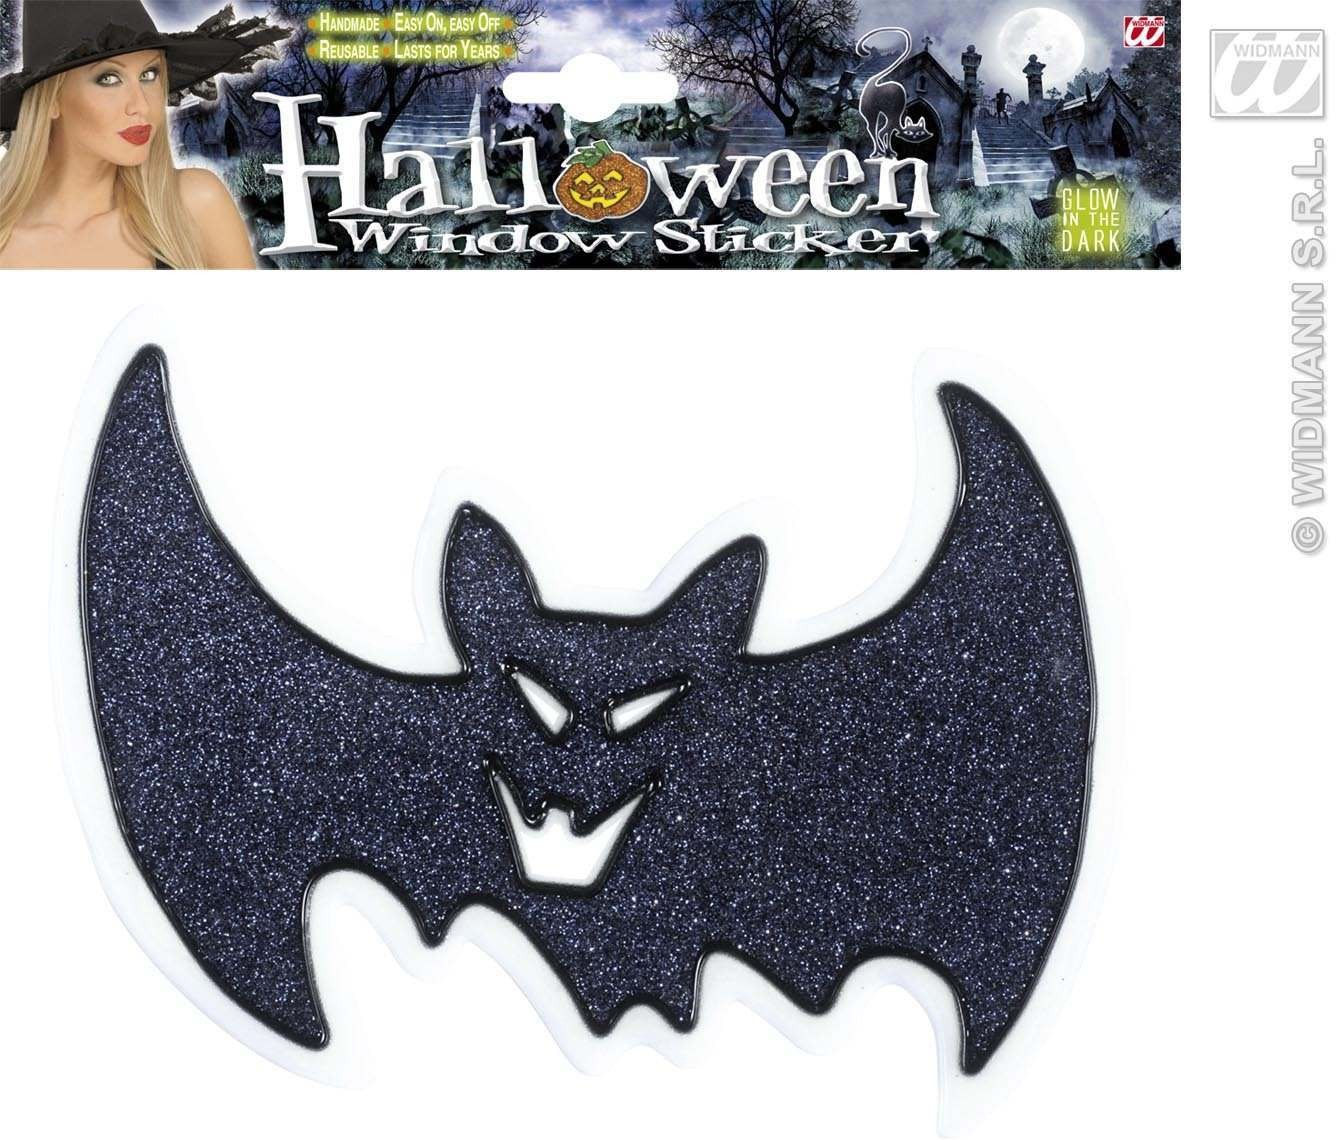 Glow In The Dark Glitter Halloween Wi - Fancy Dress (Halloween)